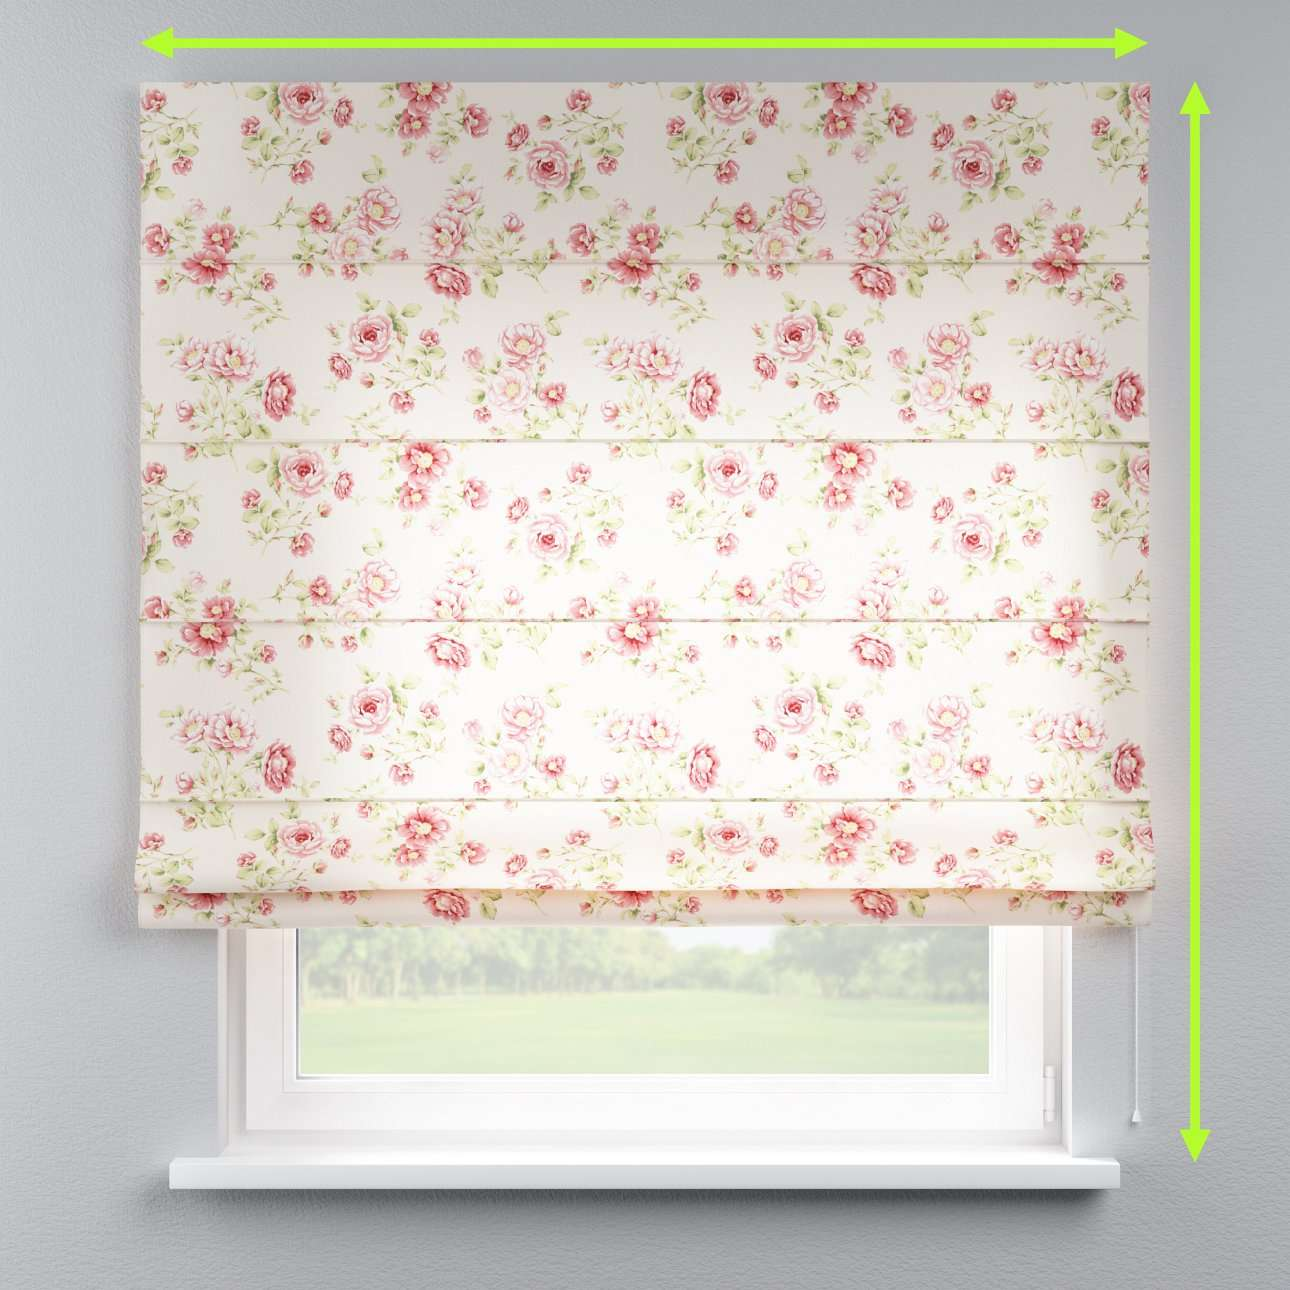 Lined roman blind in collection Ashley, fabric: 137-47